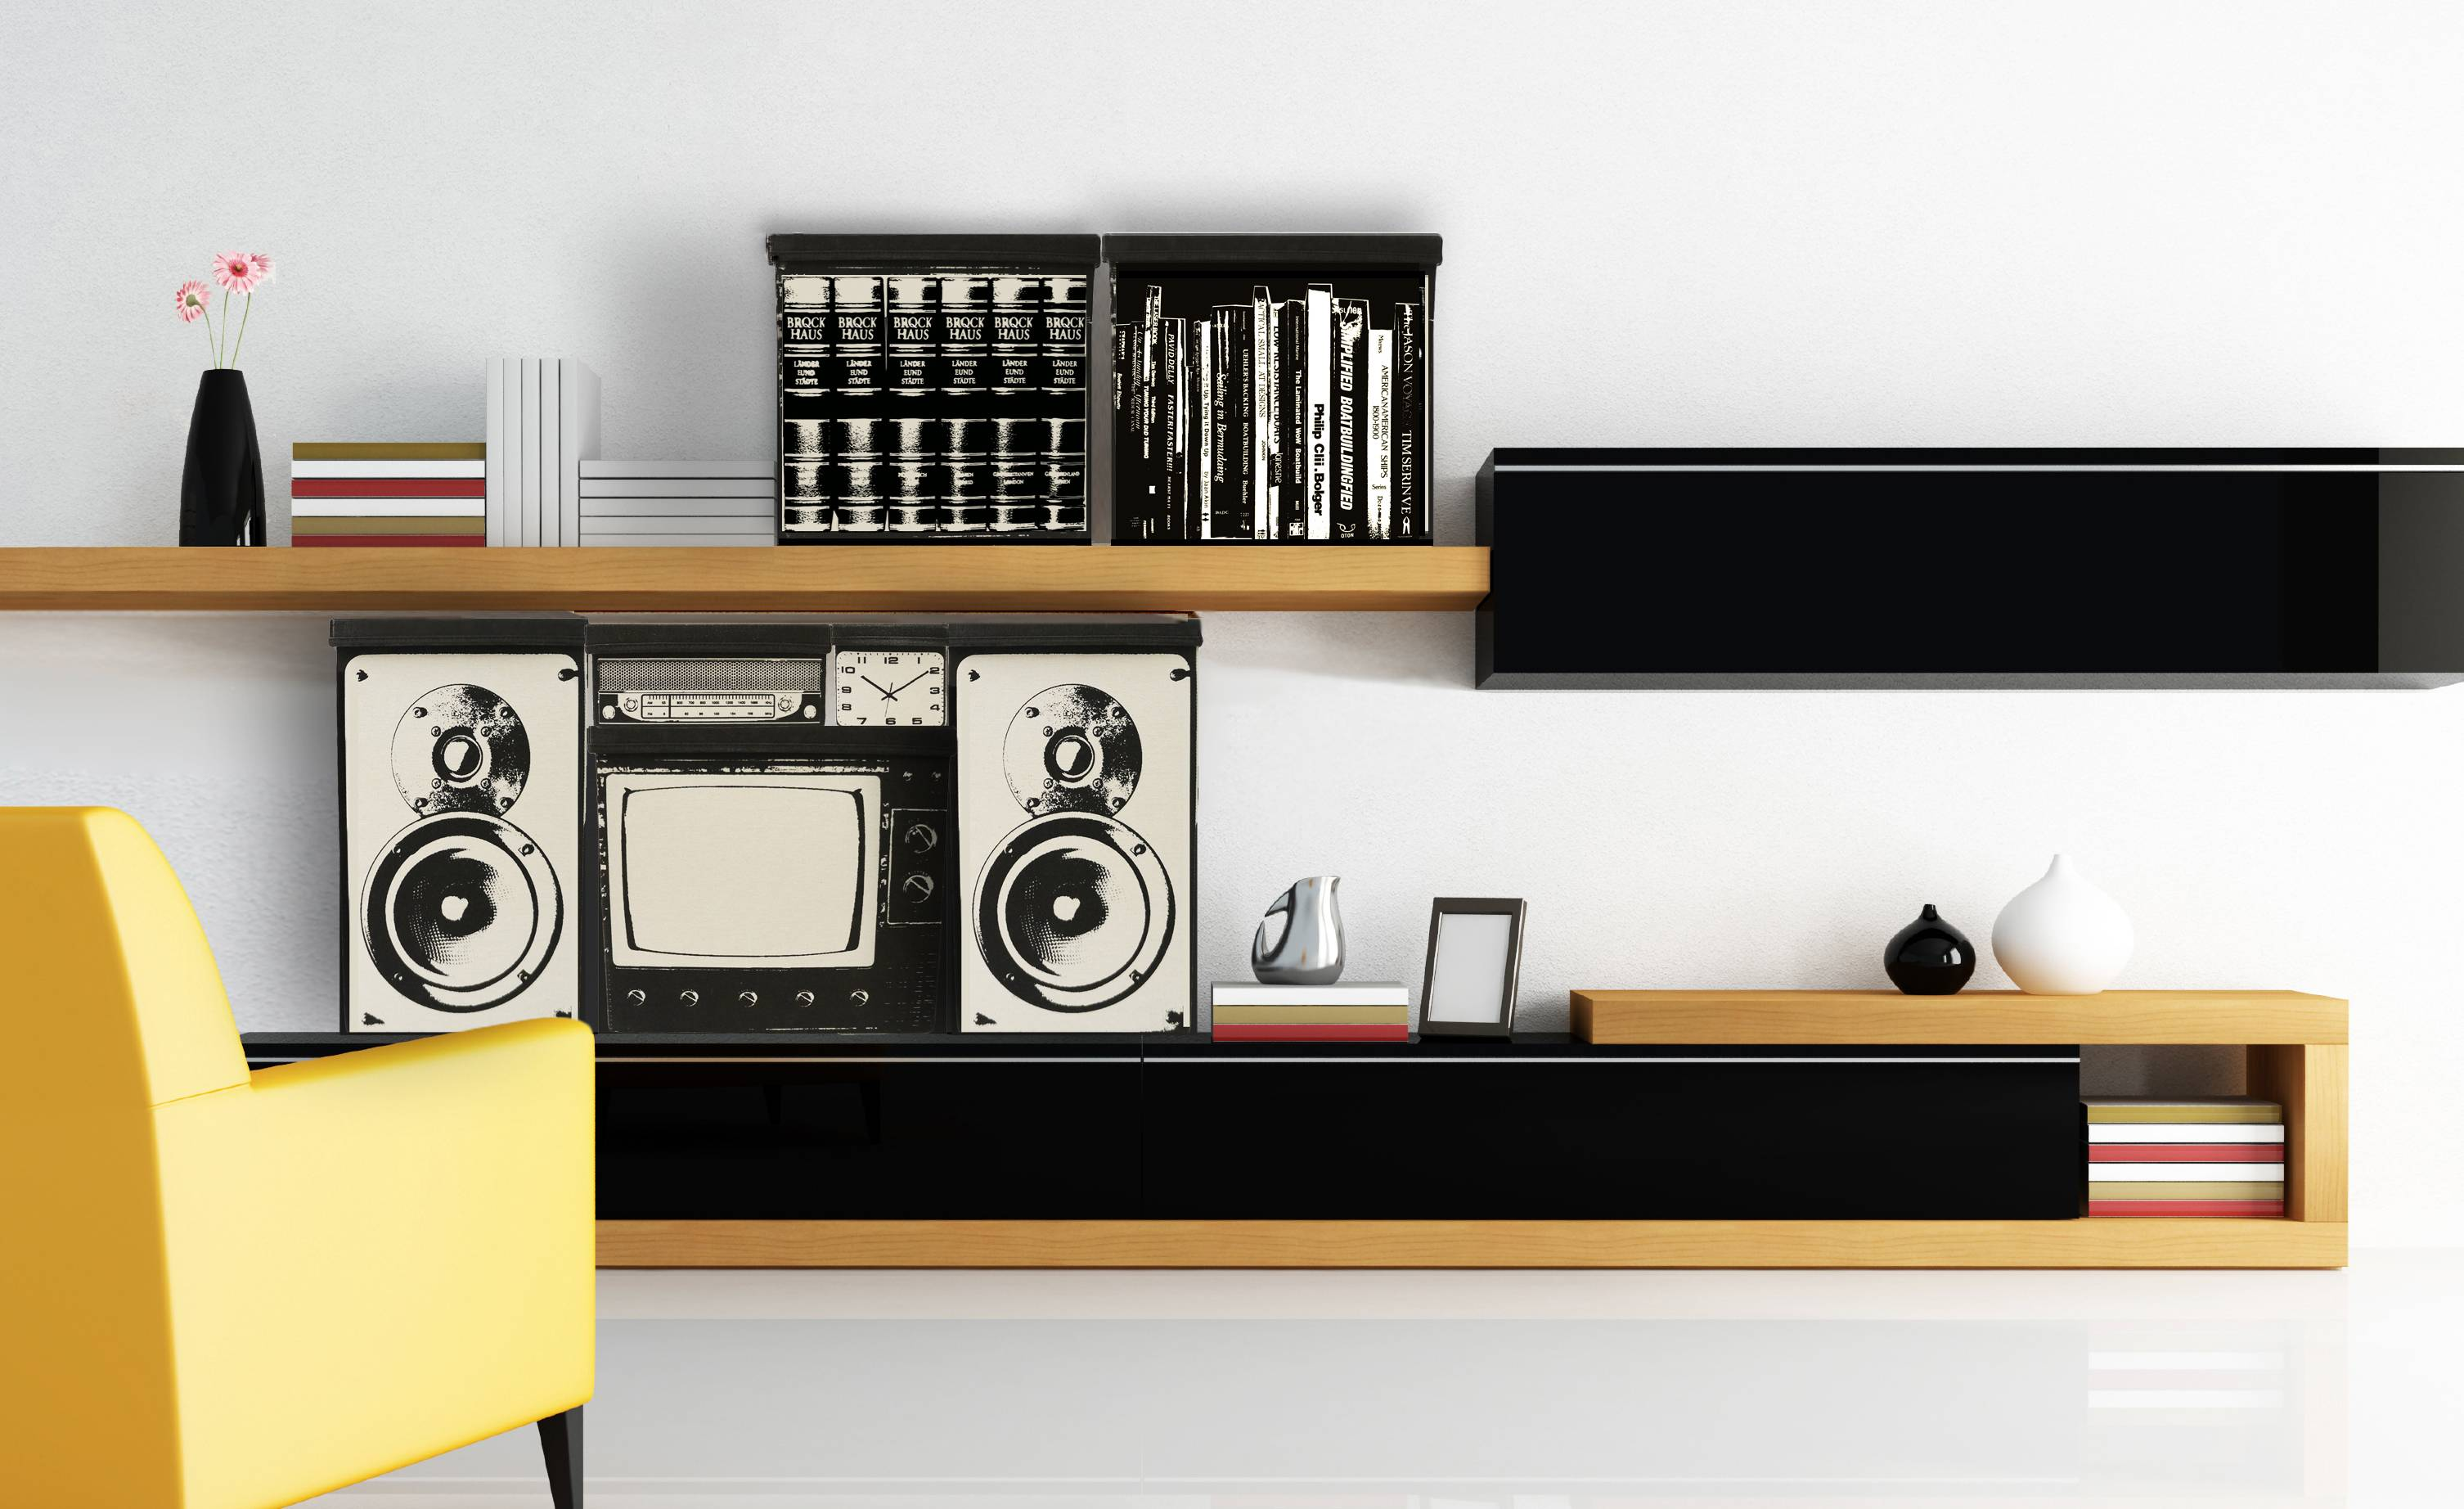 A fun canvas storage system, with bins printed with iconic retro imagery like a TV set, boombox and 80s style speakers.